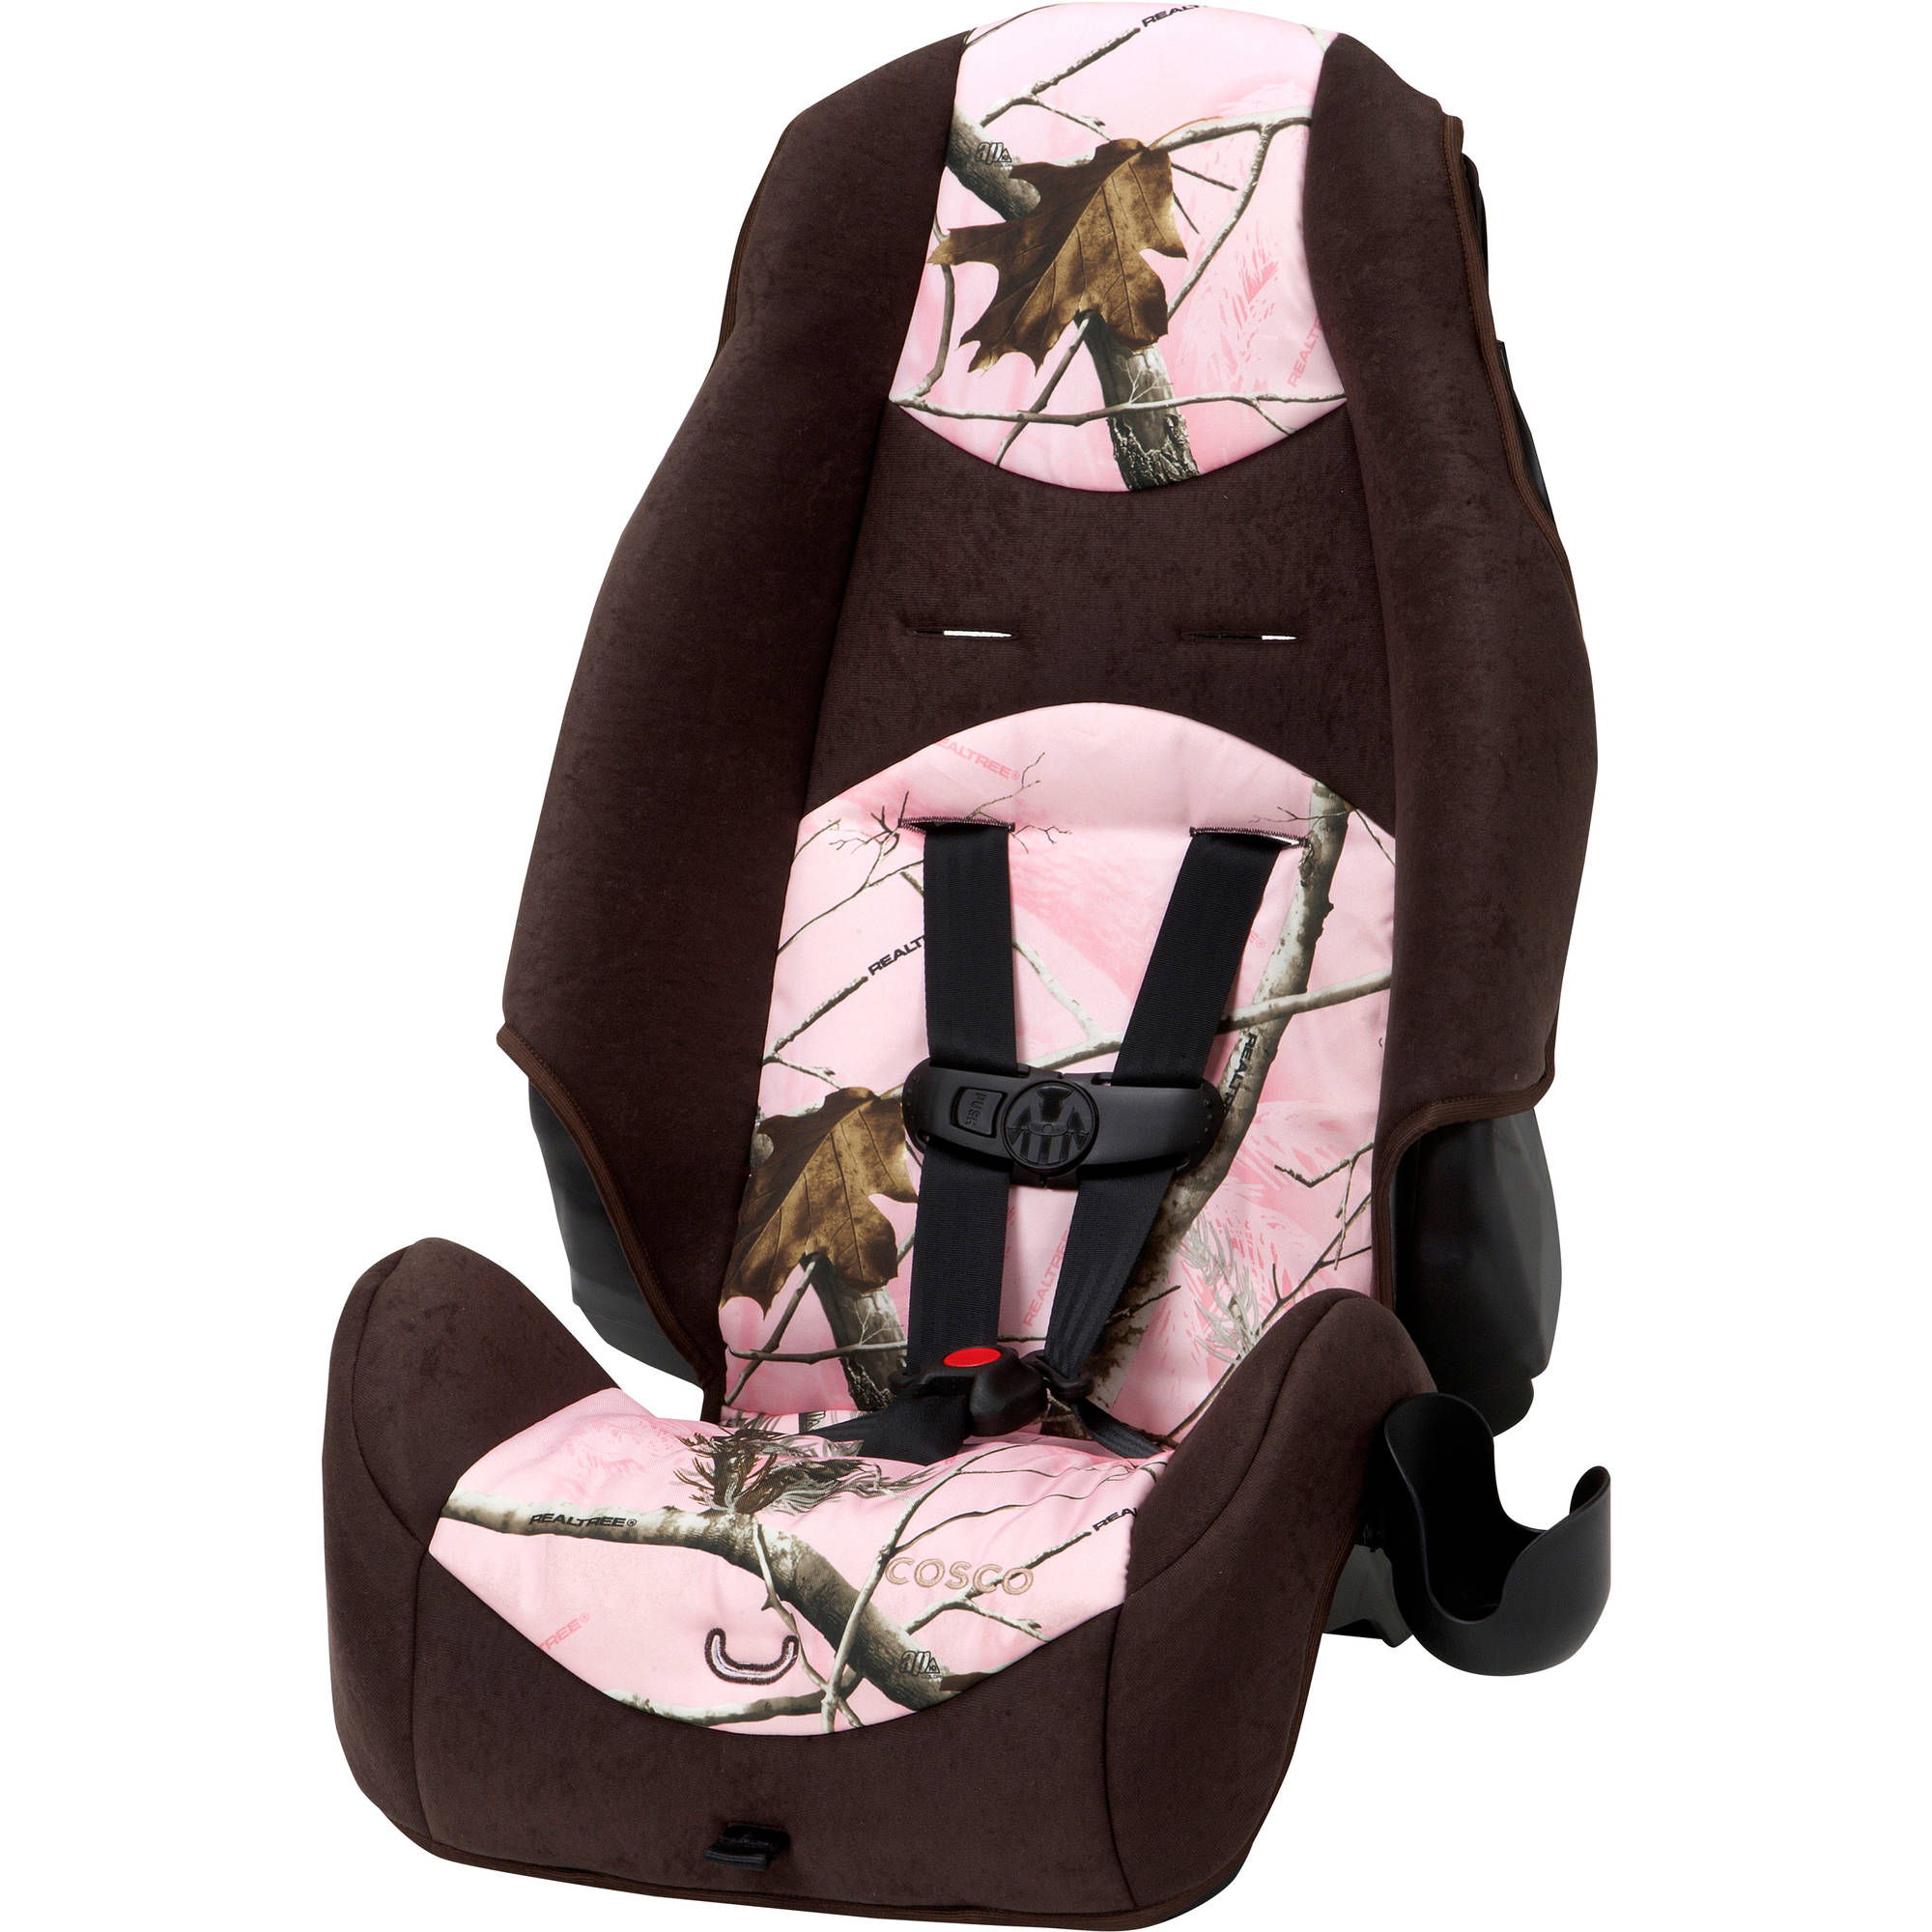 Dorel Juvenile Products Cosco Highback 2 - in - 1 Booster Car Seat, Realtree Ap Pink